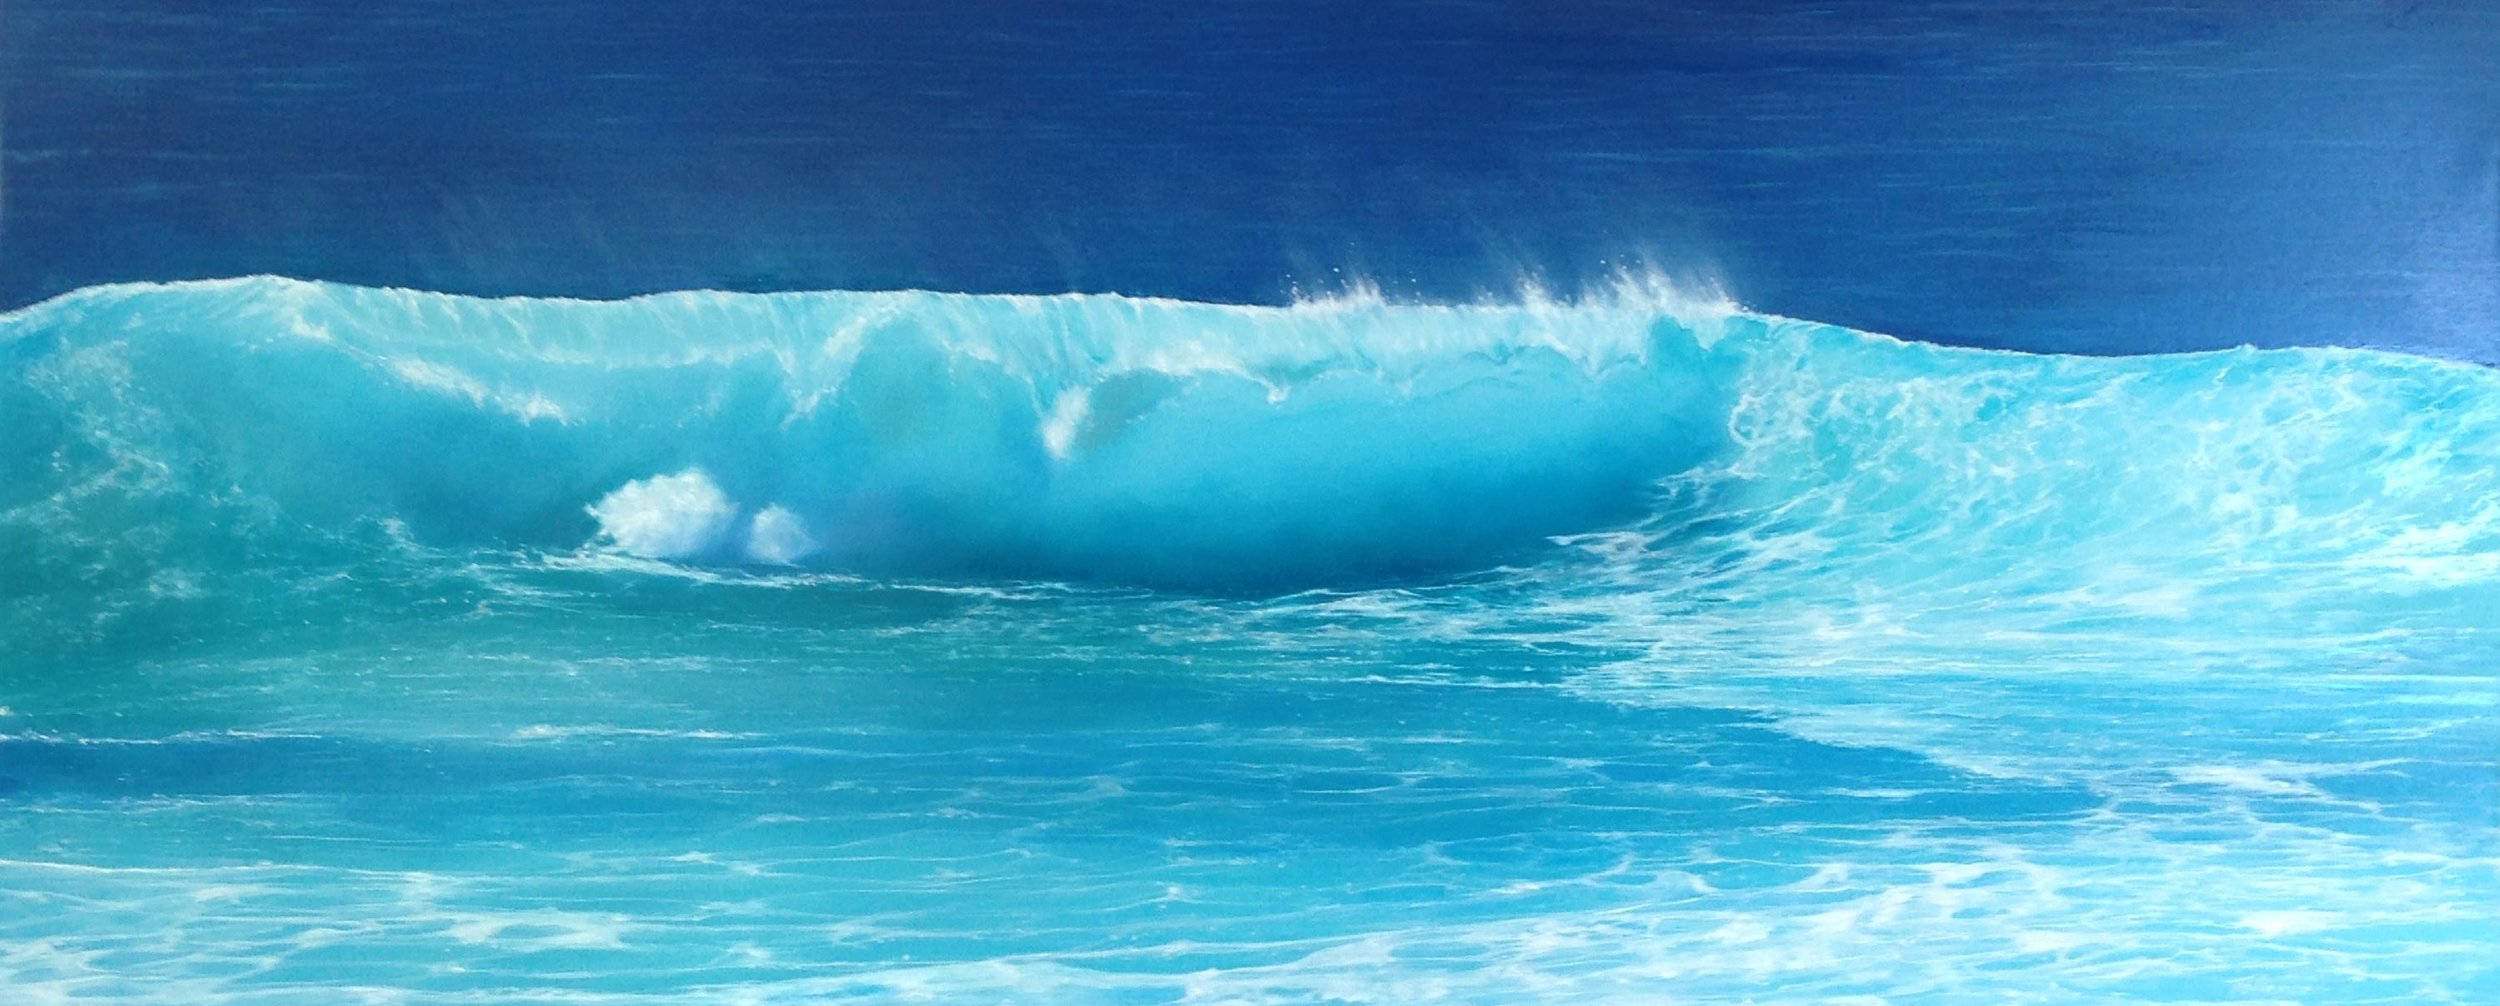 Wave painting. Oil on canvas. Photo courtesy of Rikki Tollenaere.